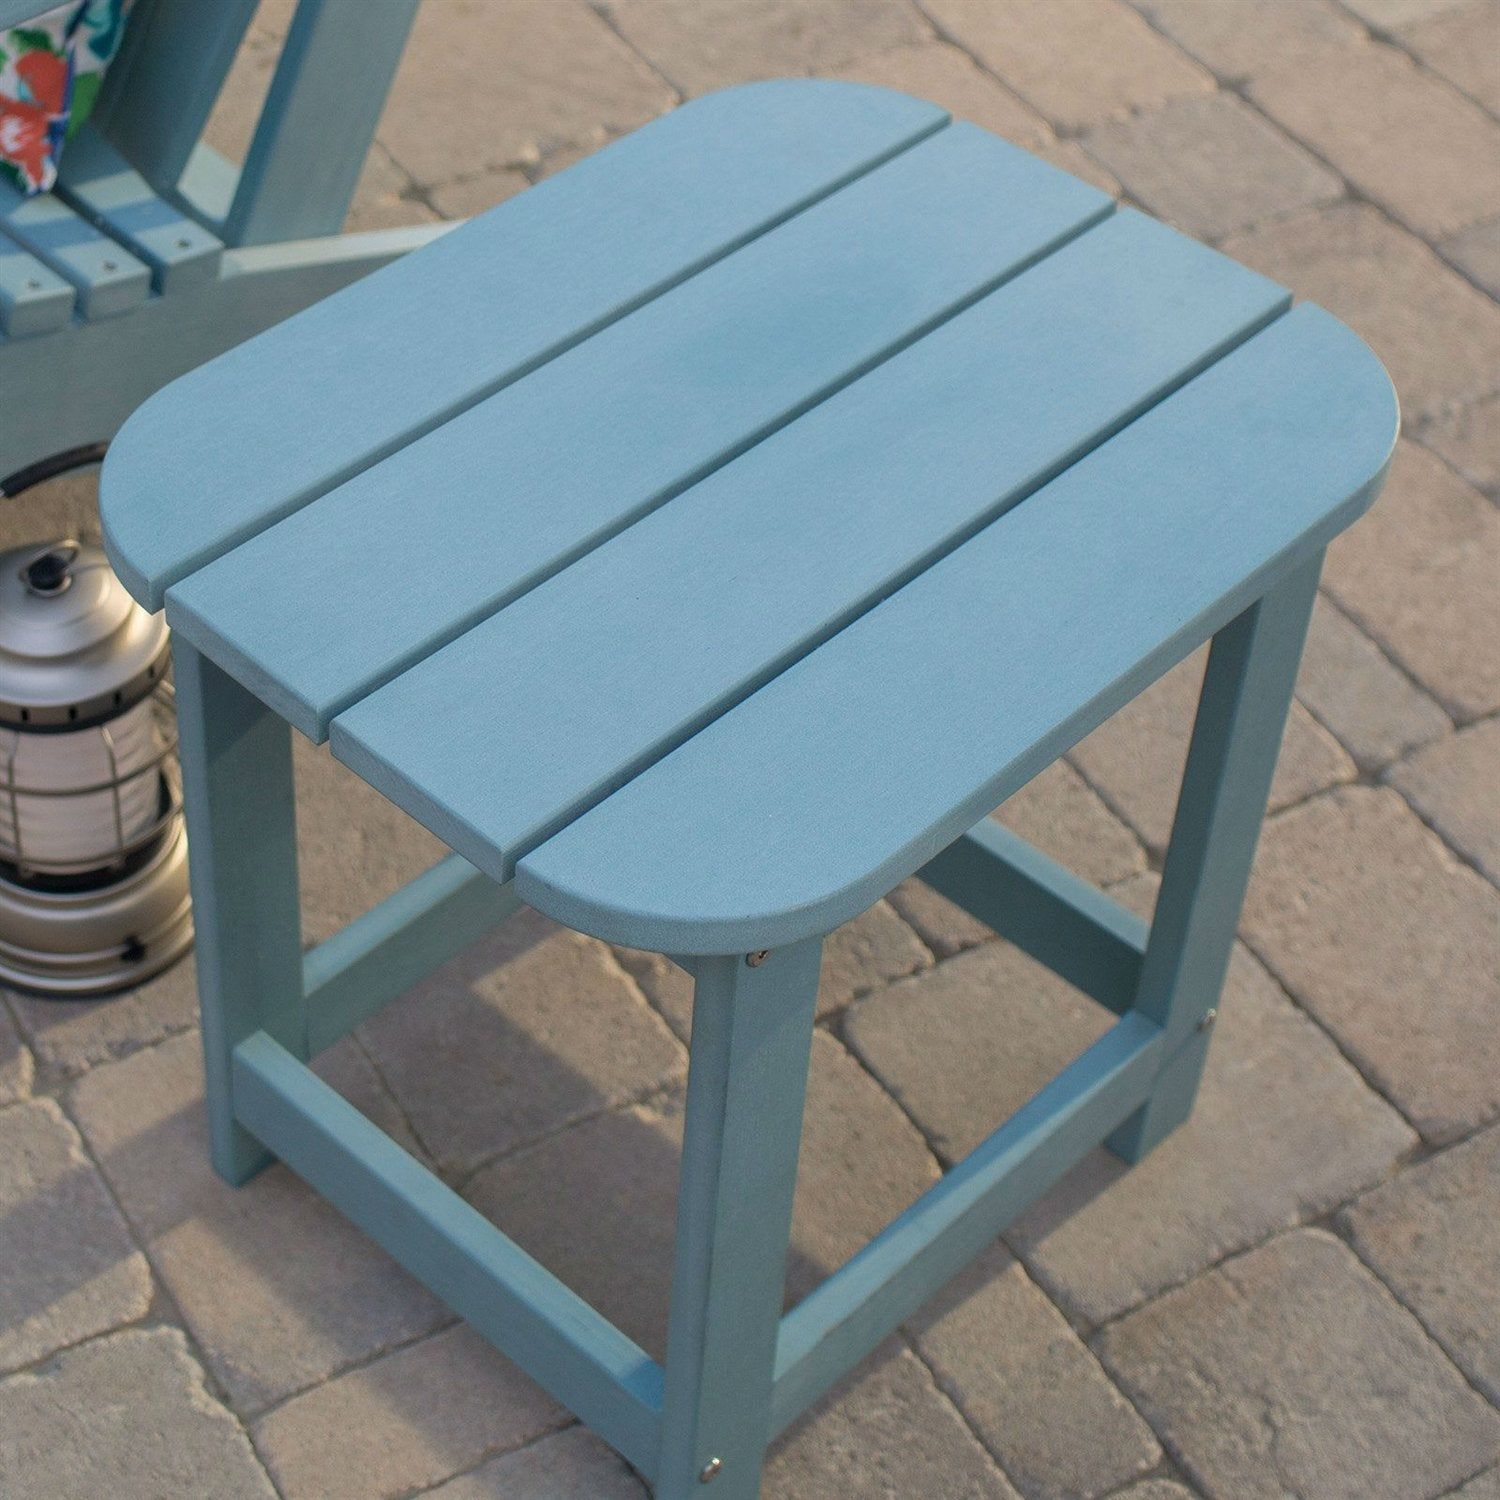 Picture of: Outdoor Deck Patio Side Table In Blue Green Resin Wood Look Finish Shabbyliving